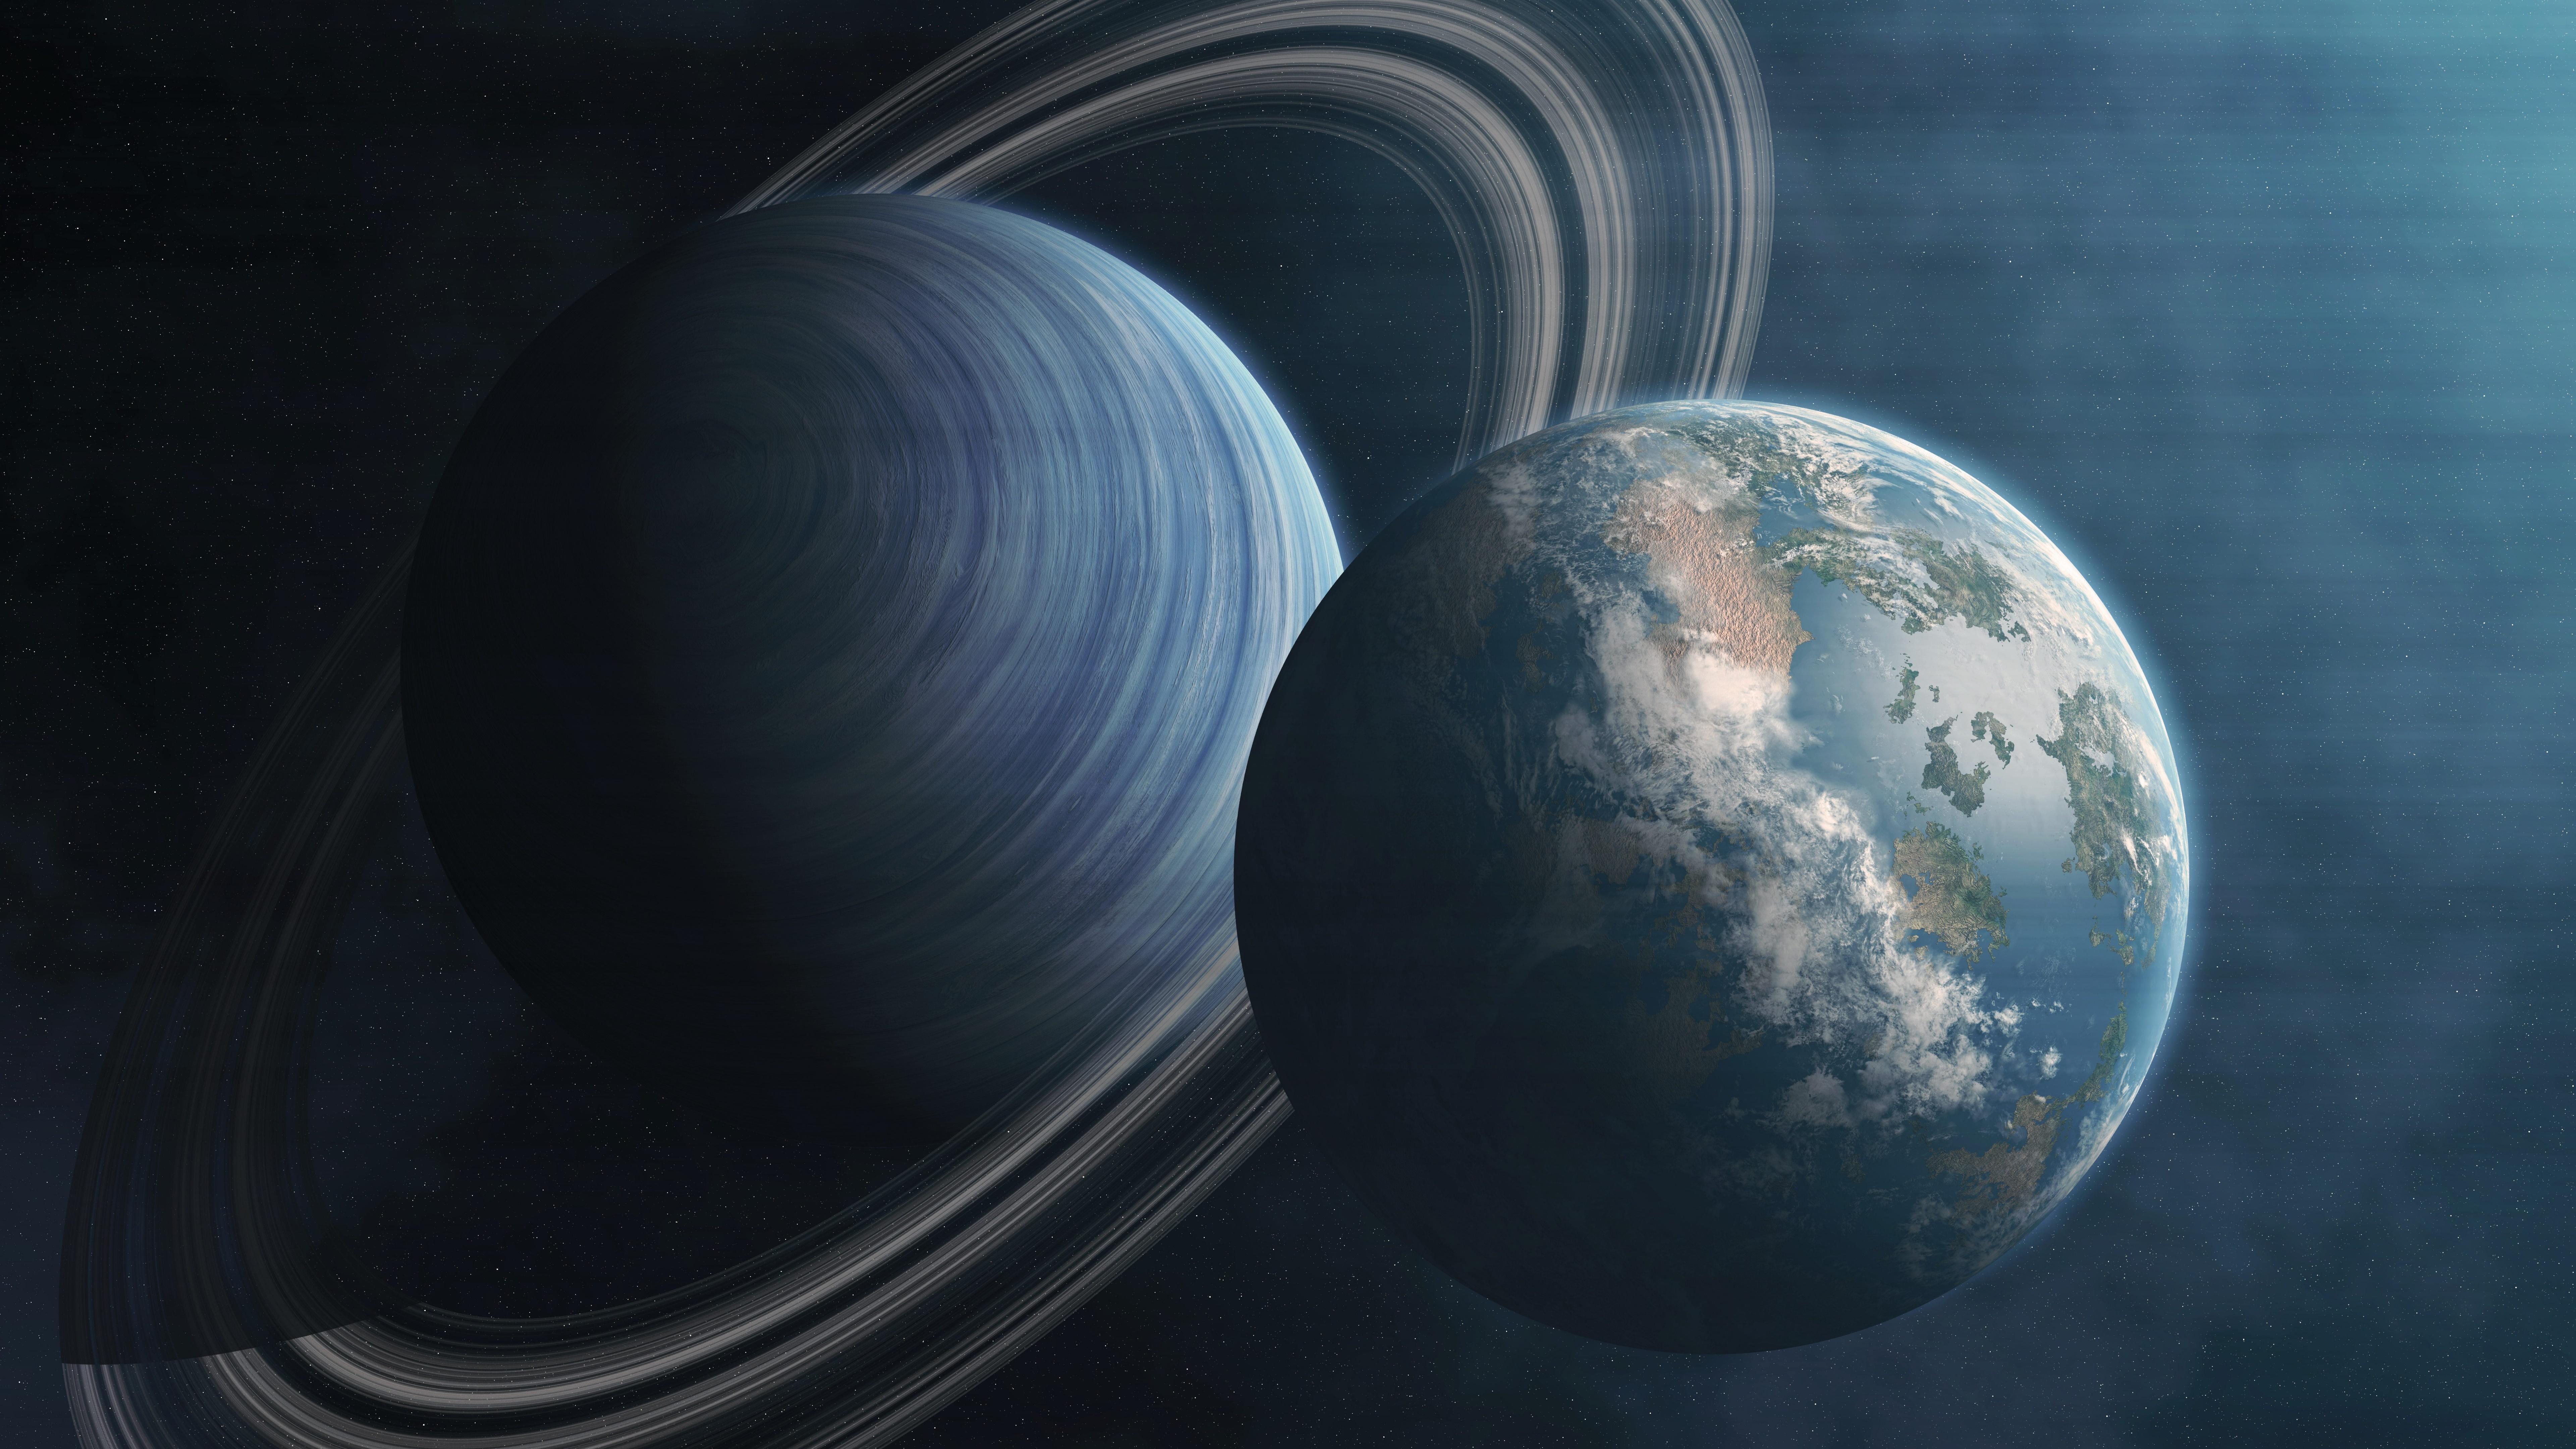 Saturn and Earth wallpaper